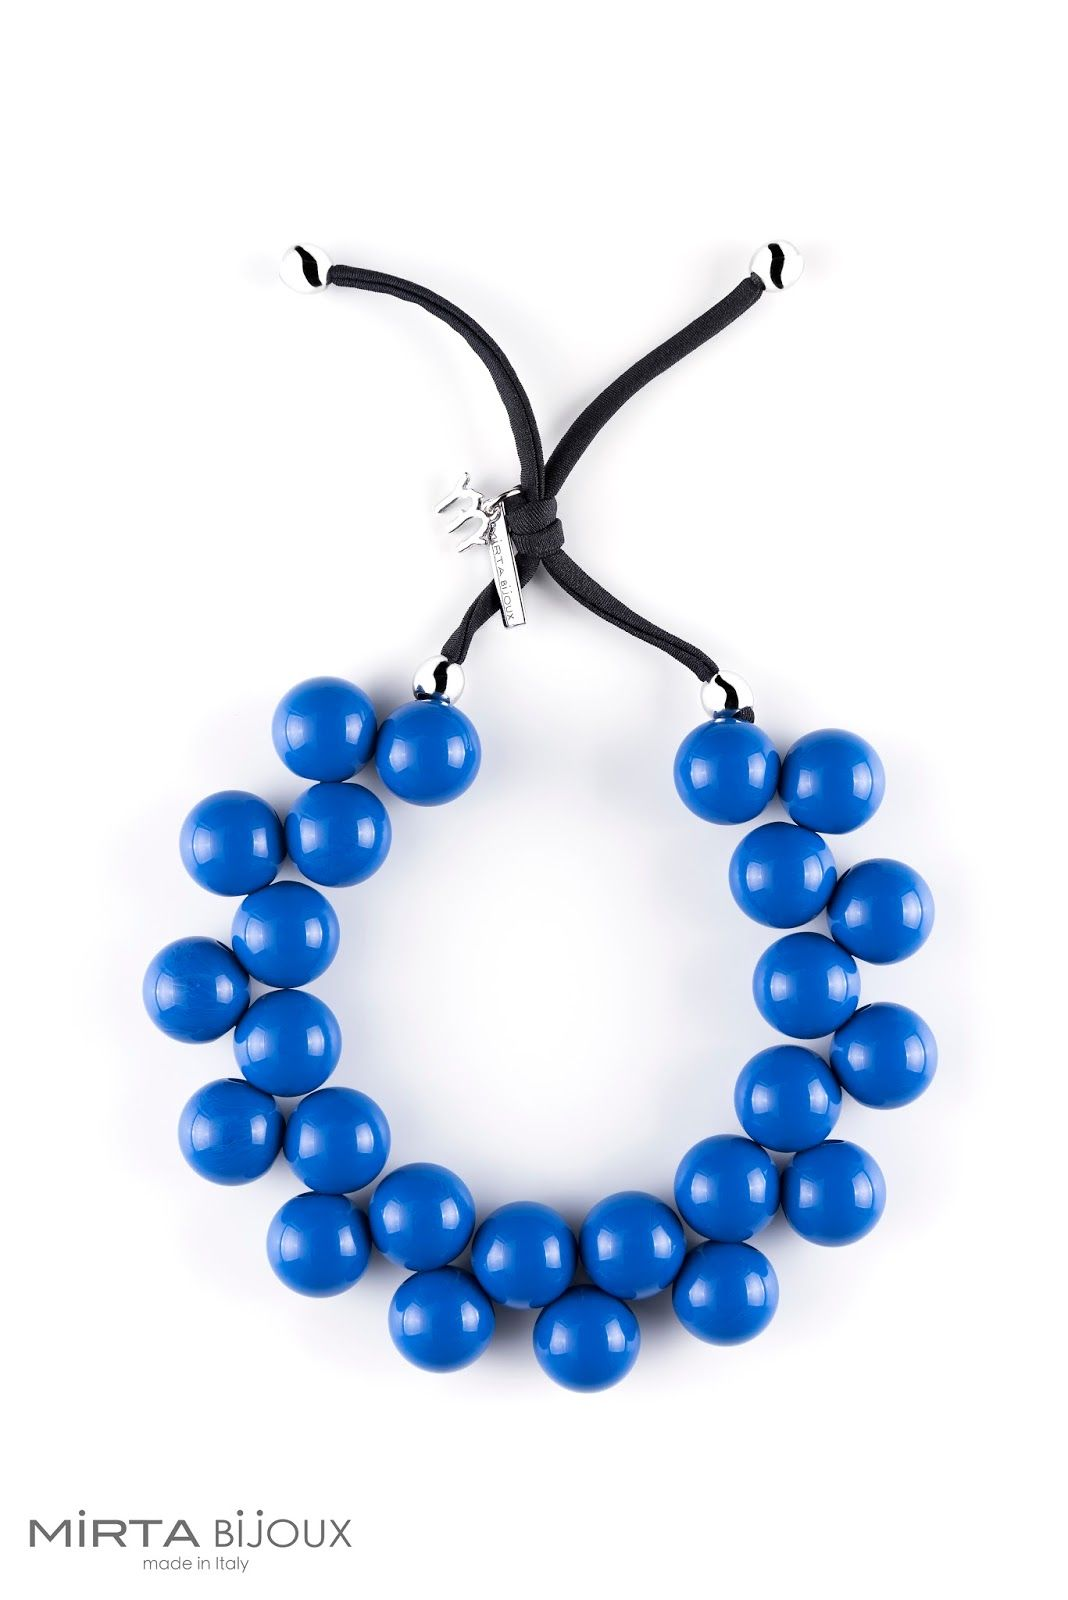 bas prix éclatant conception adroite Theresa May's Blue Balls necklace by Mirta Bijoux. | Theresa ...